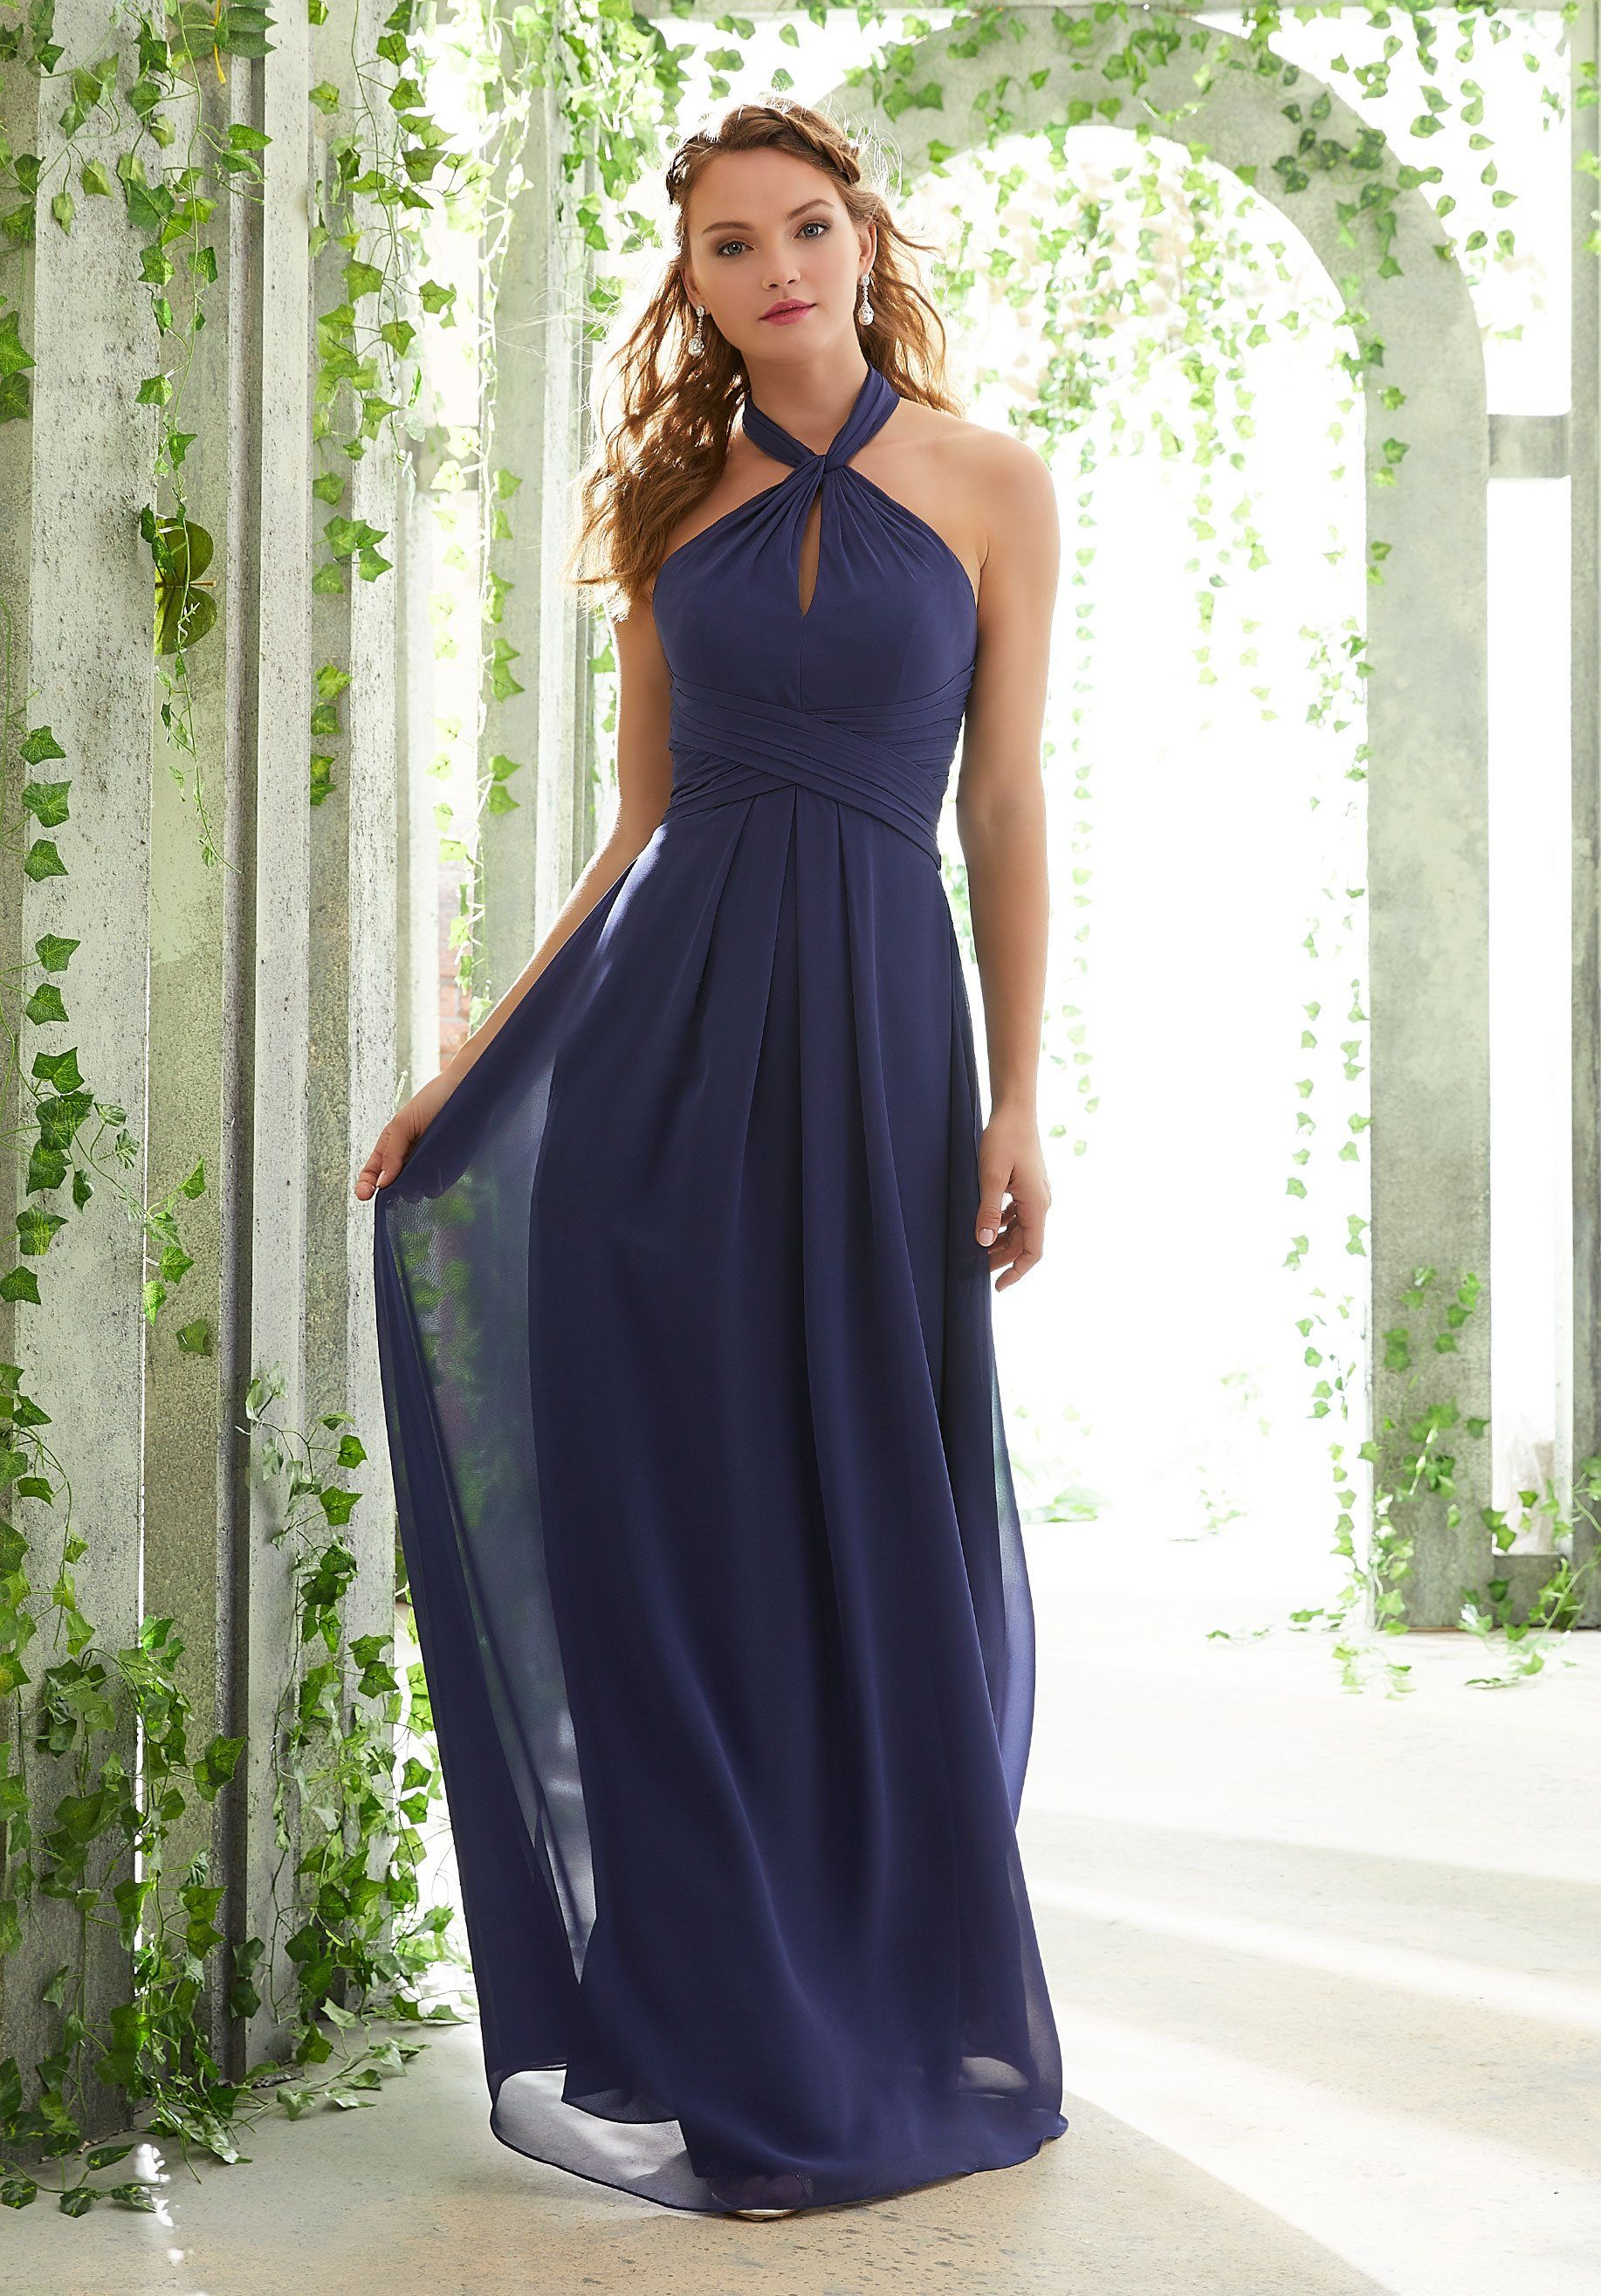 78b2f9014a885 Morilee Bridesmaids 21616 Chiffon Halter with Low Back Bridesmaids Dre –  Off White